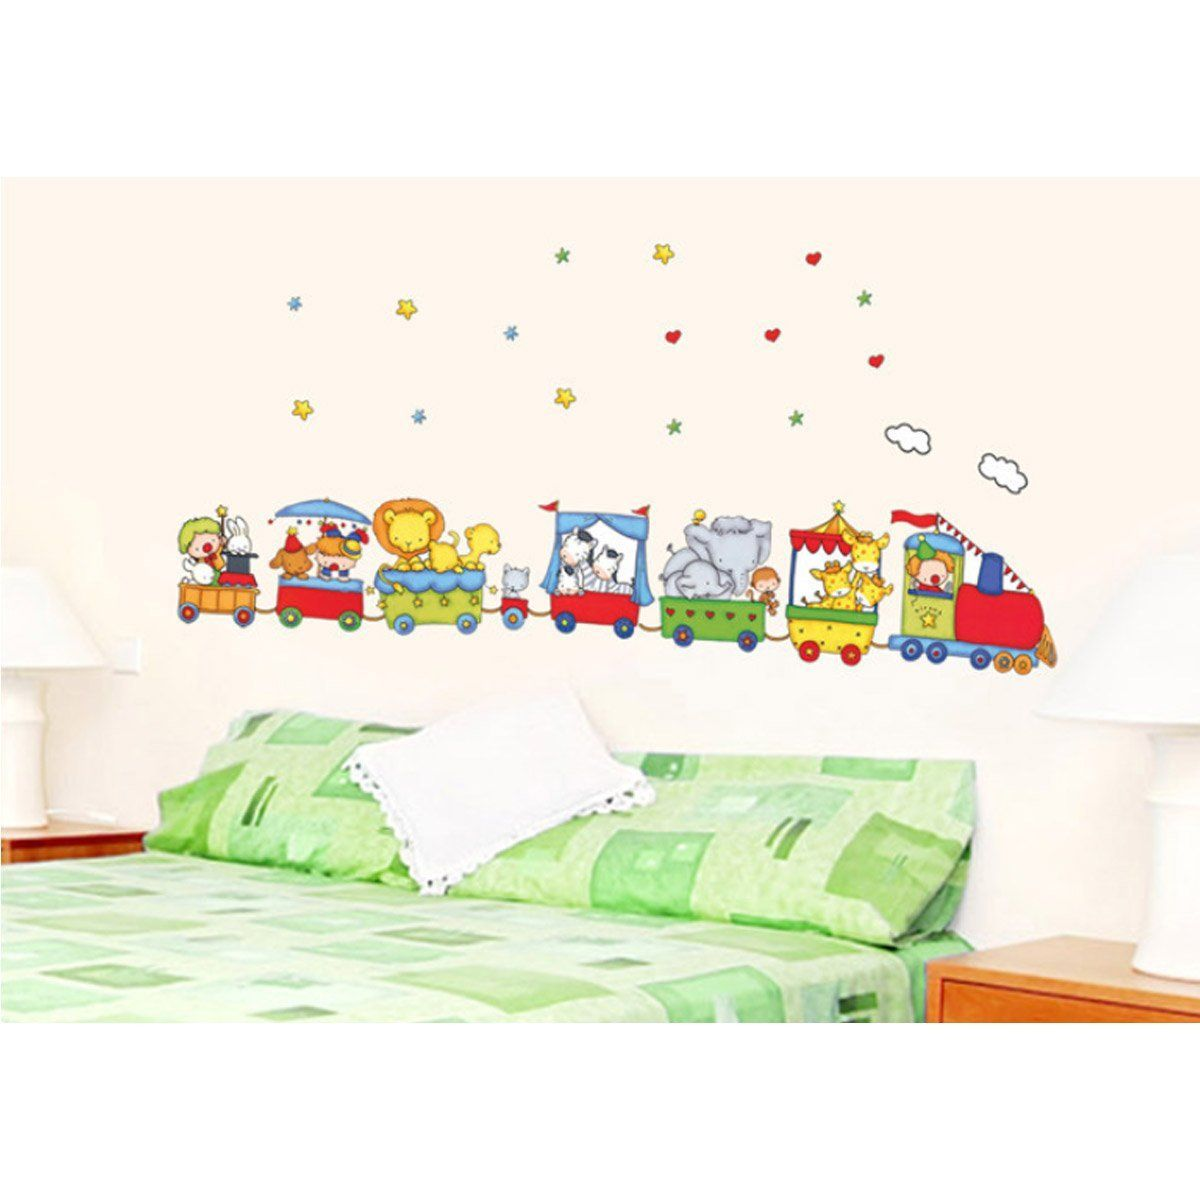 Vinilo Decorativo Pared Yesurprise Vinilo Decorativo Infantil Pegatina Pared